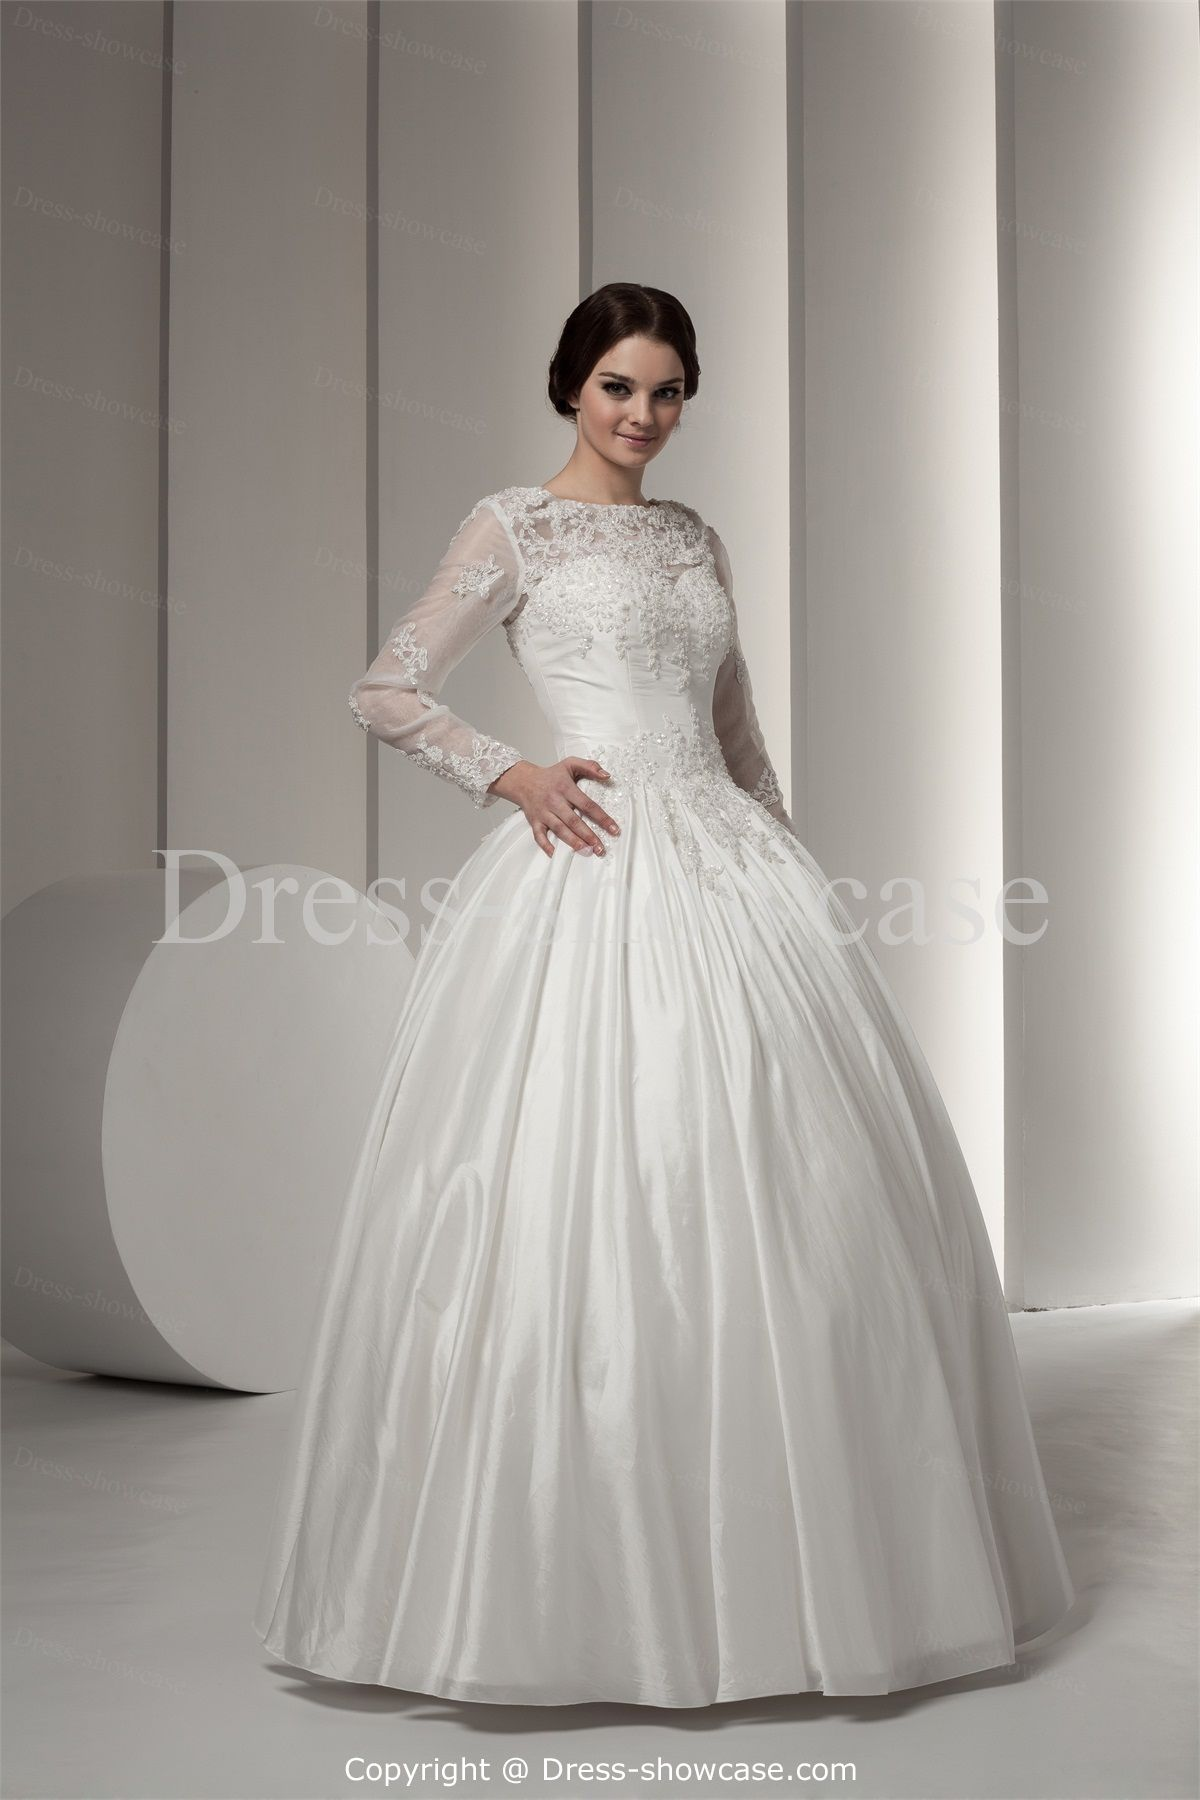 907ff44c6237ac Long Sleeve Ball Gowns